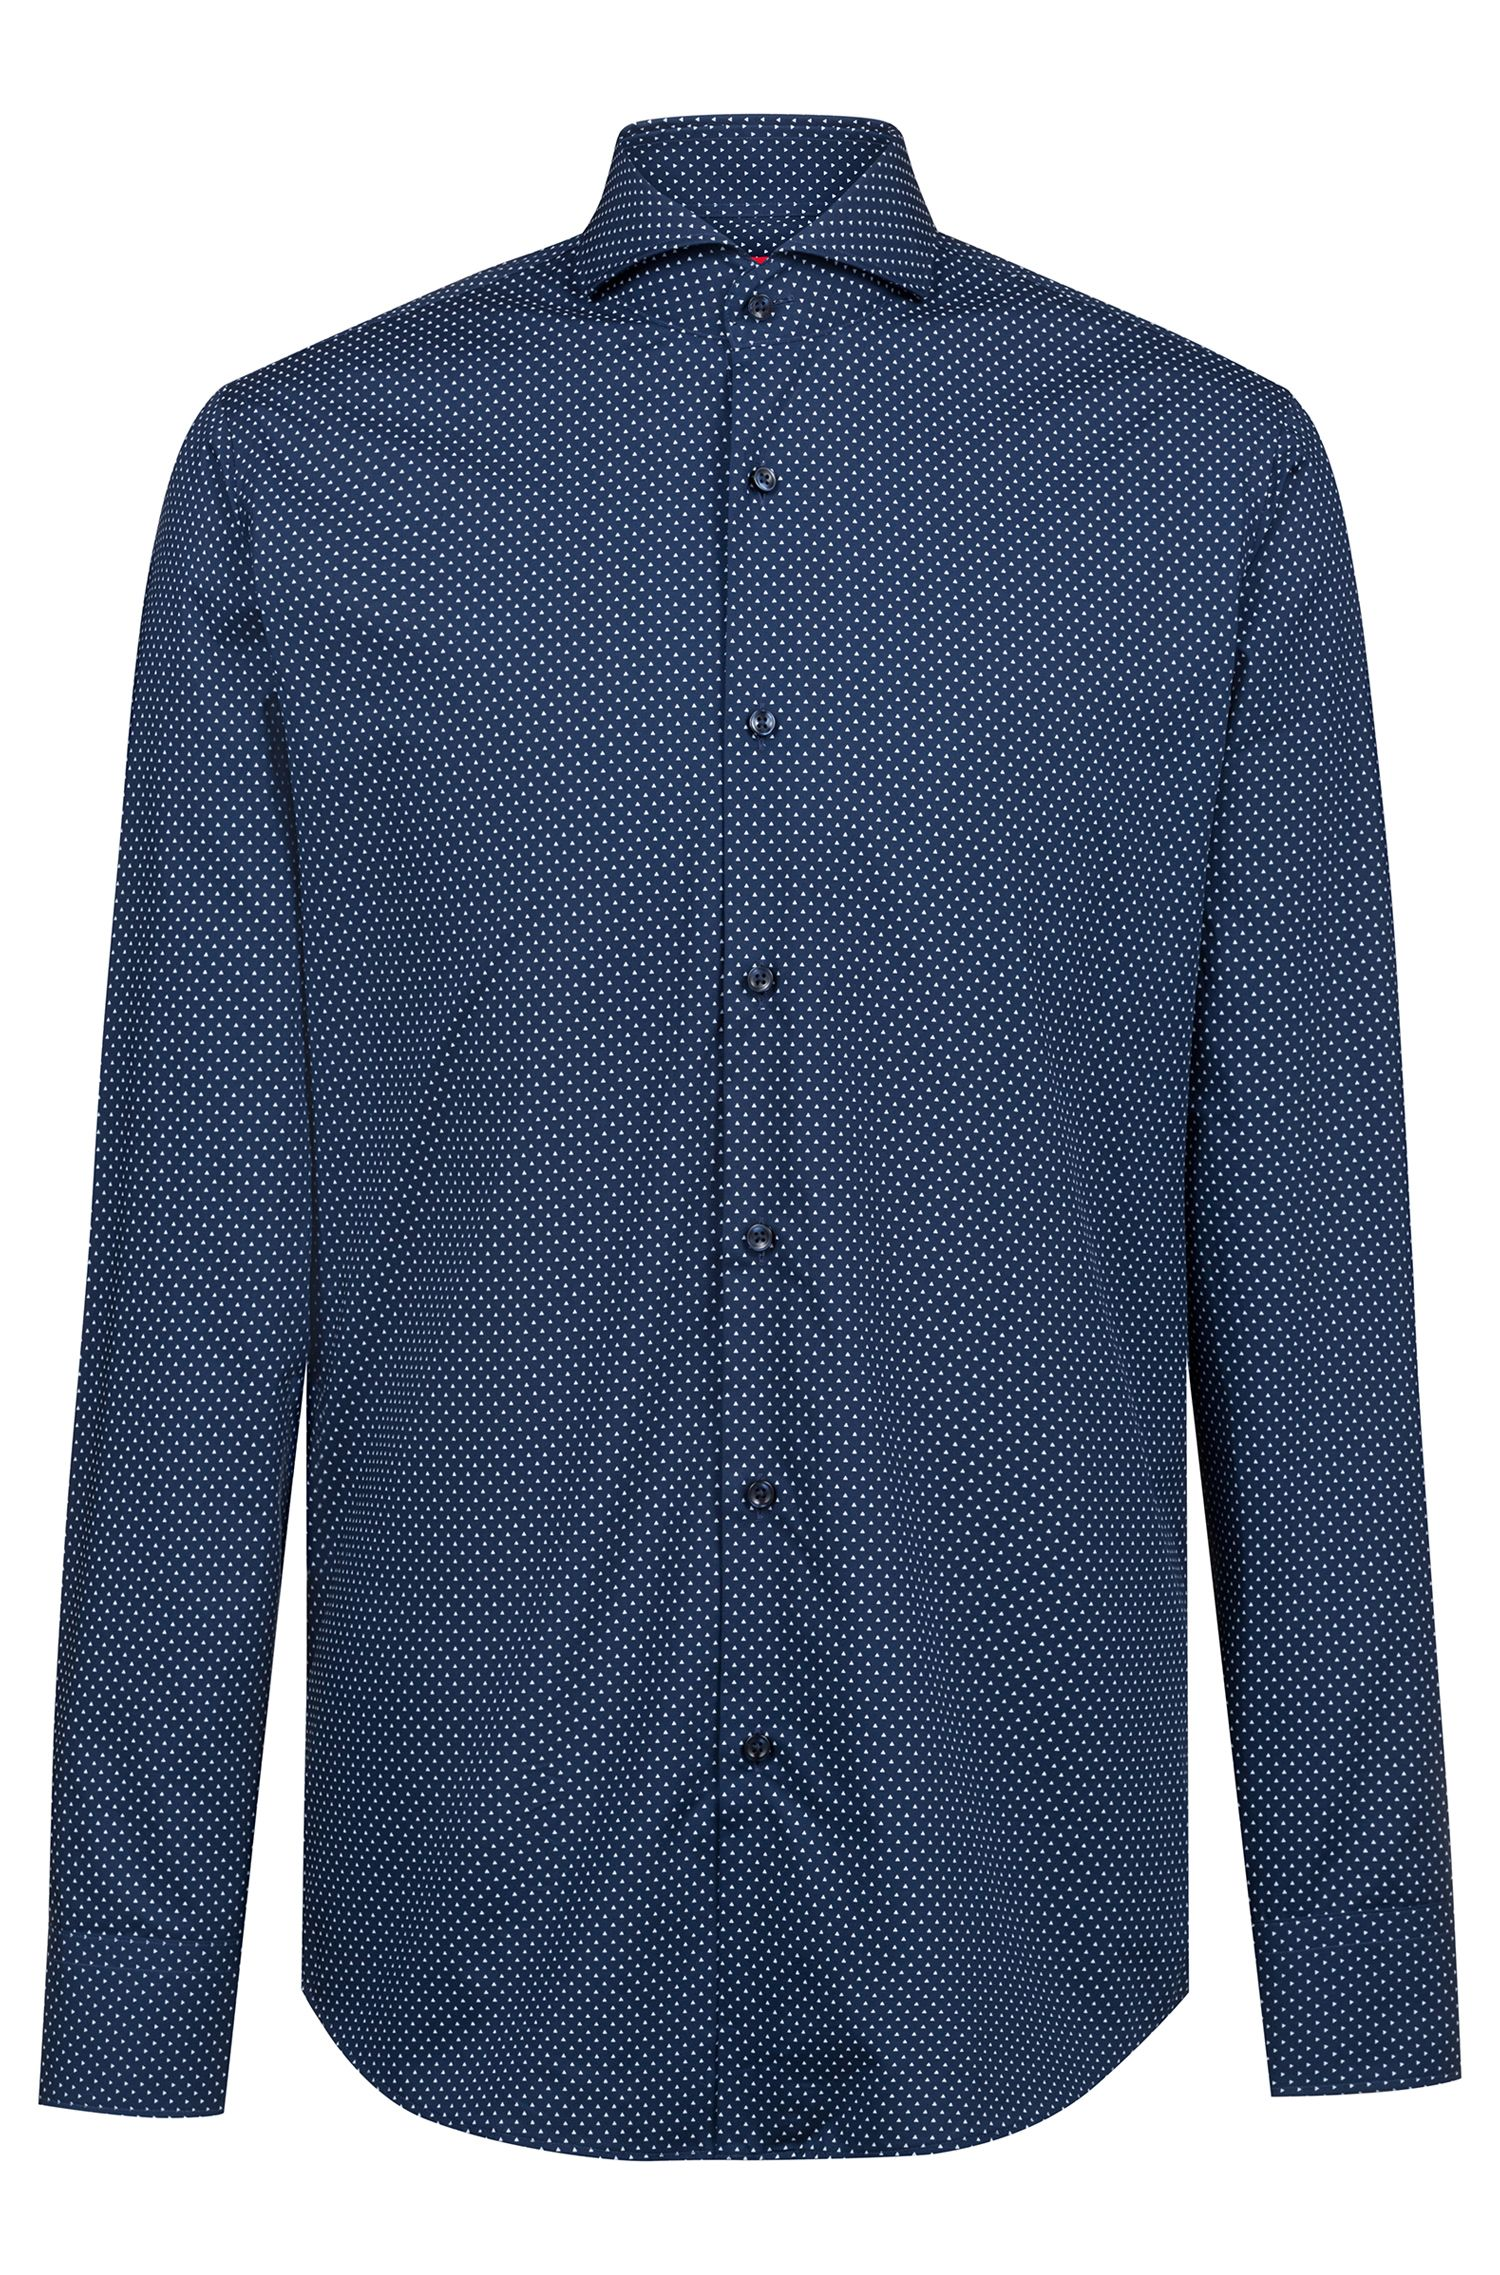 Camisa regular fit en algodón estampado con cuello italiano